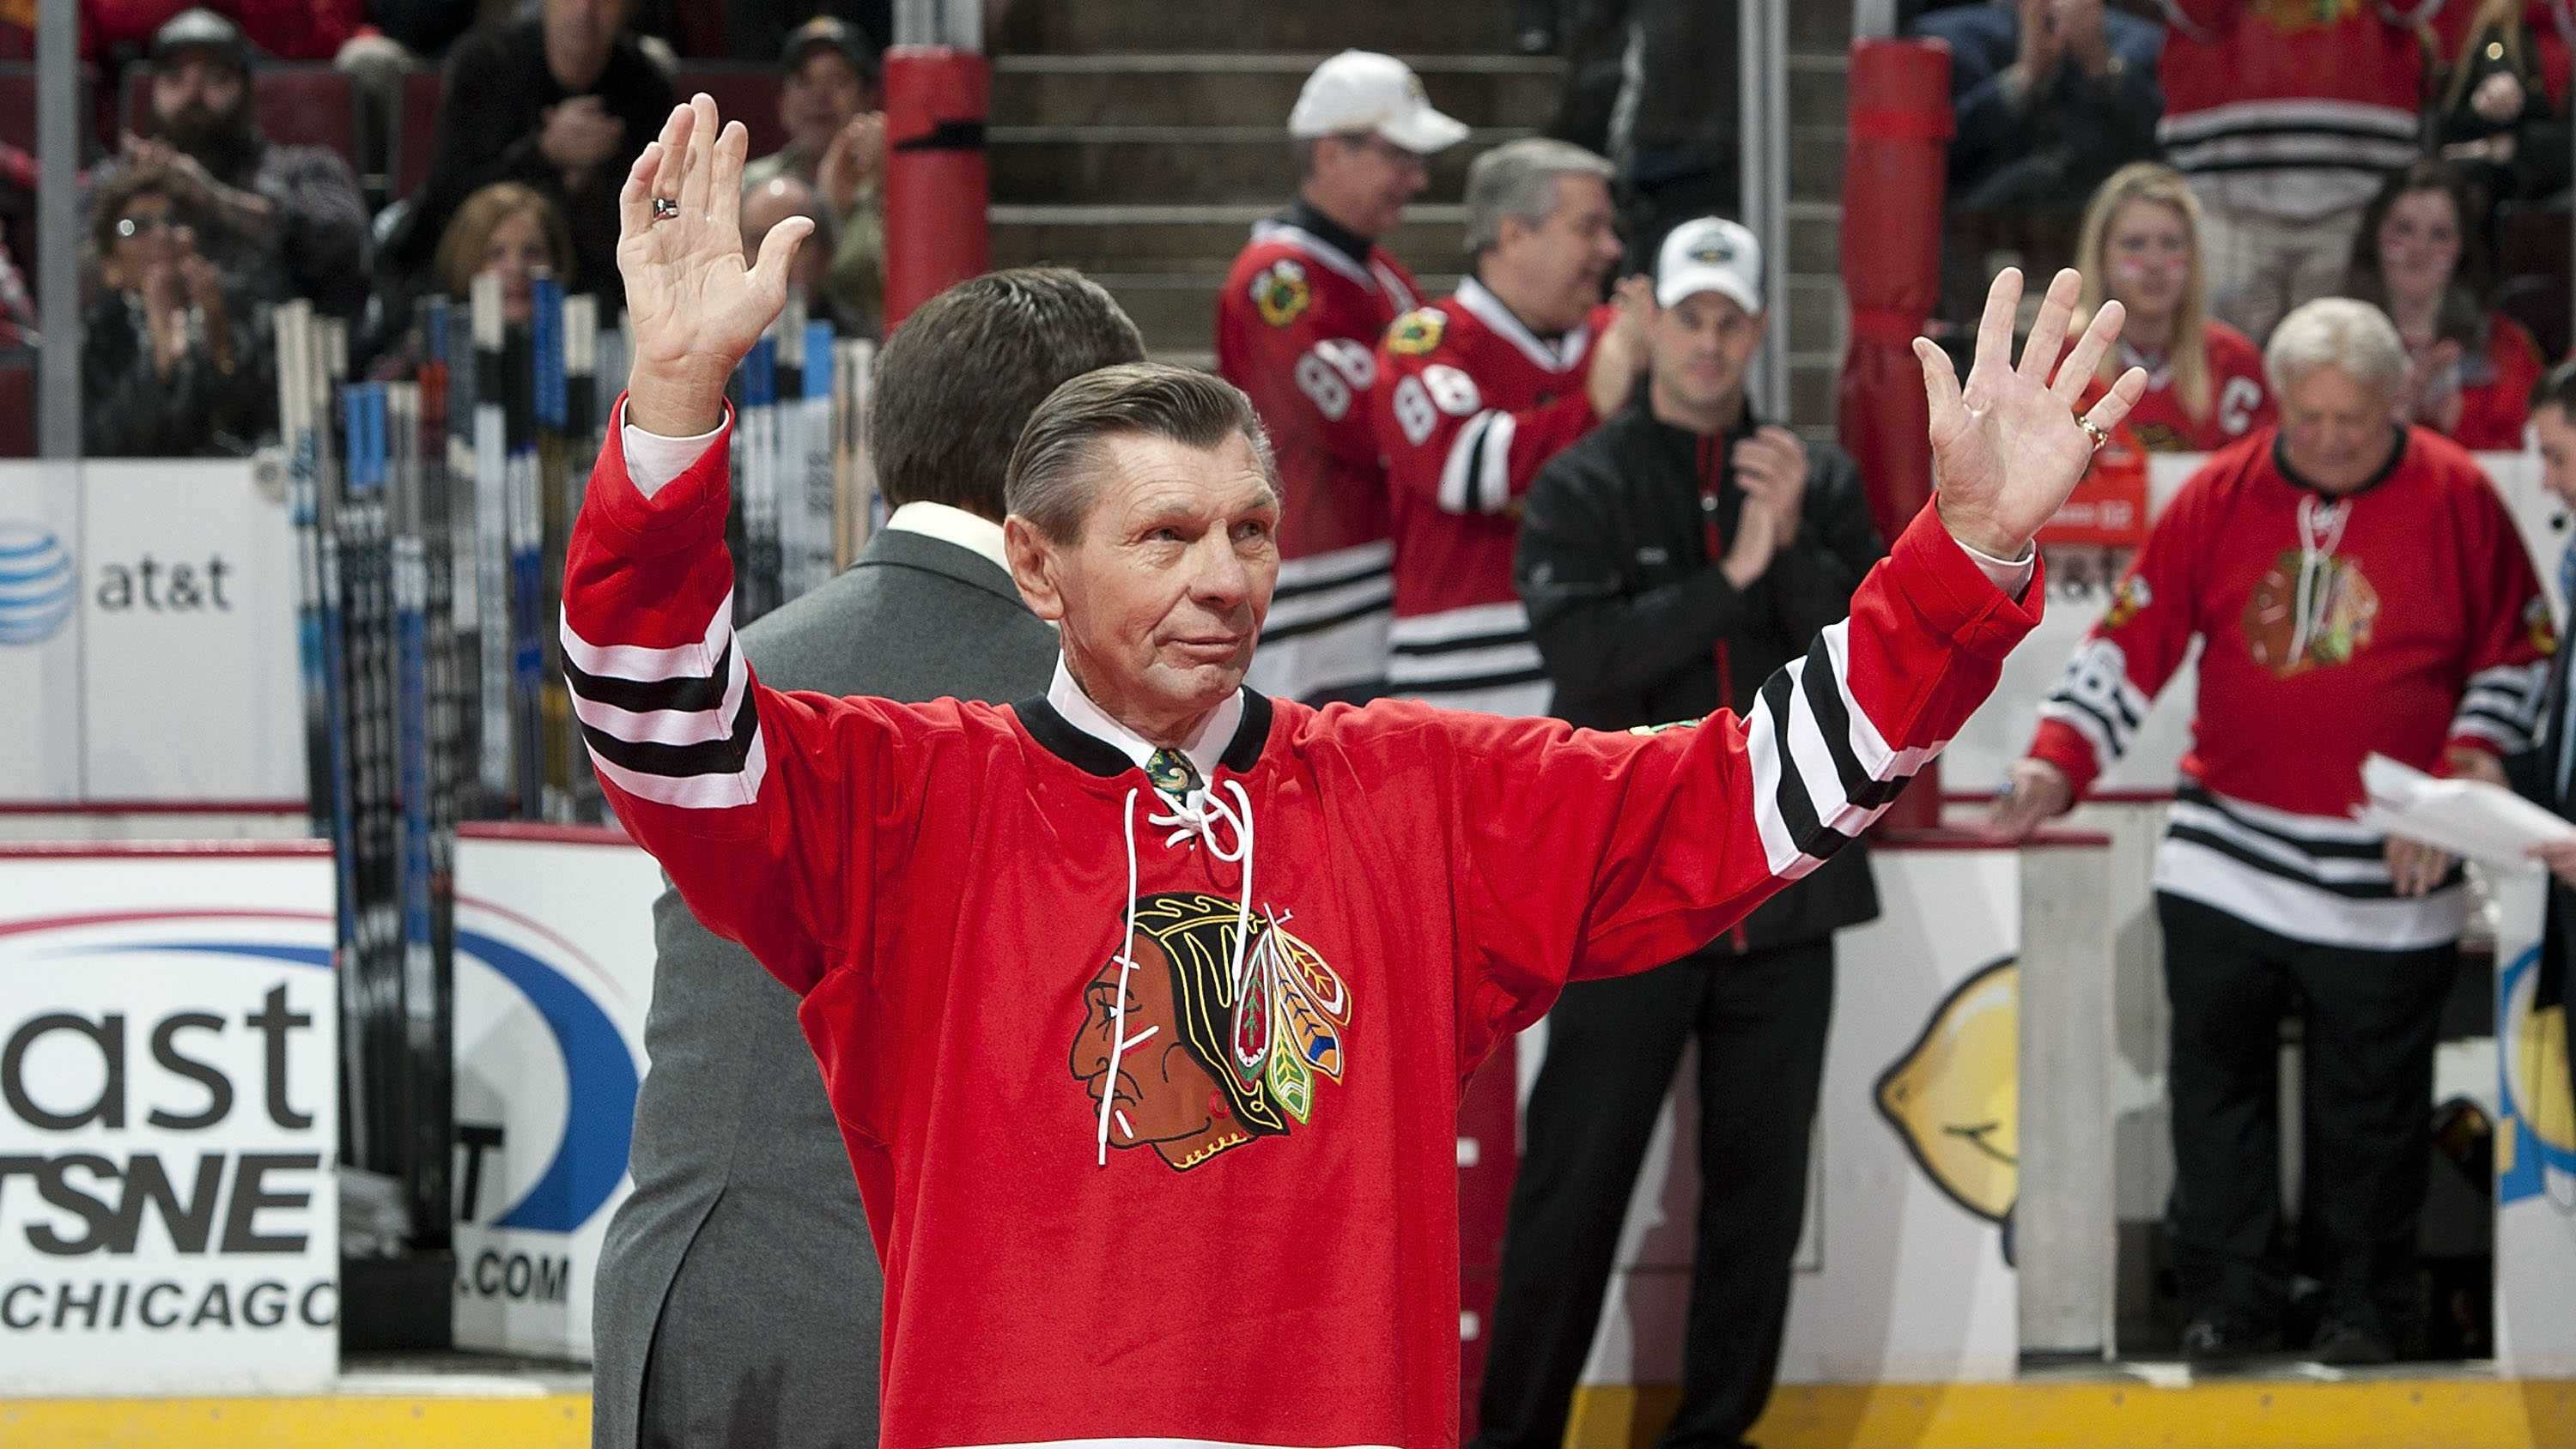 CHICAGO, IL - JANUARY 09: Former Chicago Blackhawks player, Stan Mikita, of the 1961 Stanley Cup Championship team is honored before the game against the New York Islanders on January 9, 2011 at the United Center in Chicago, Illinois.